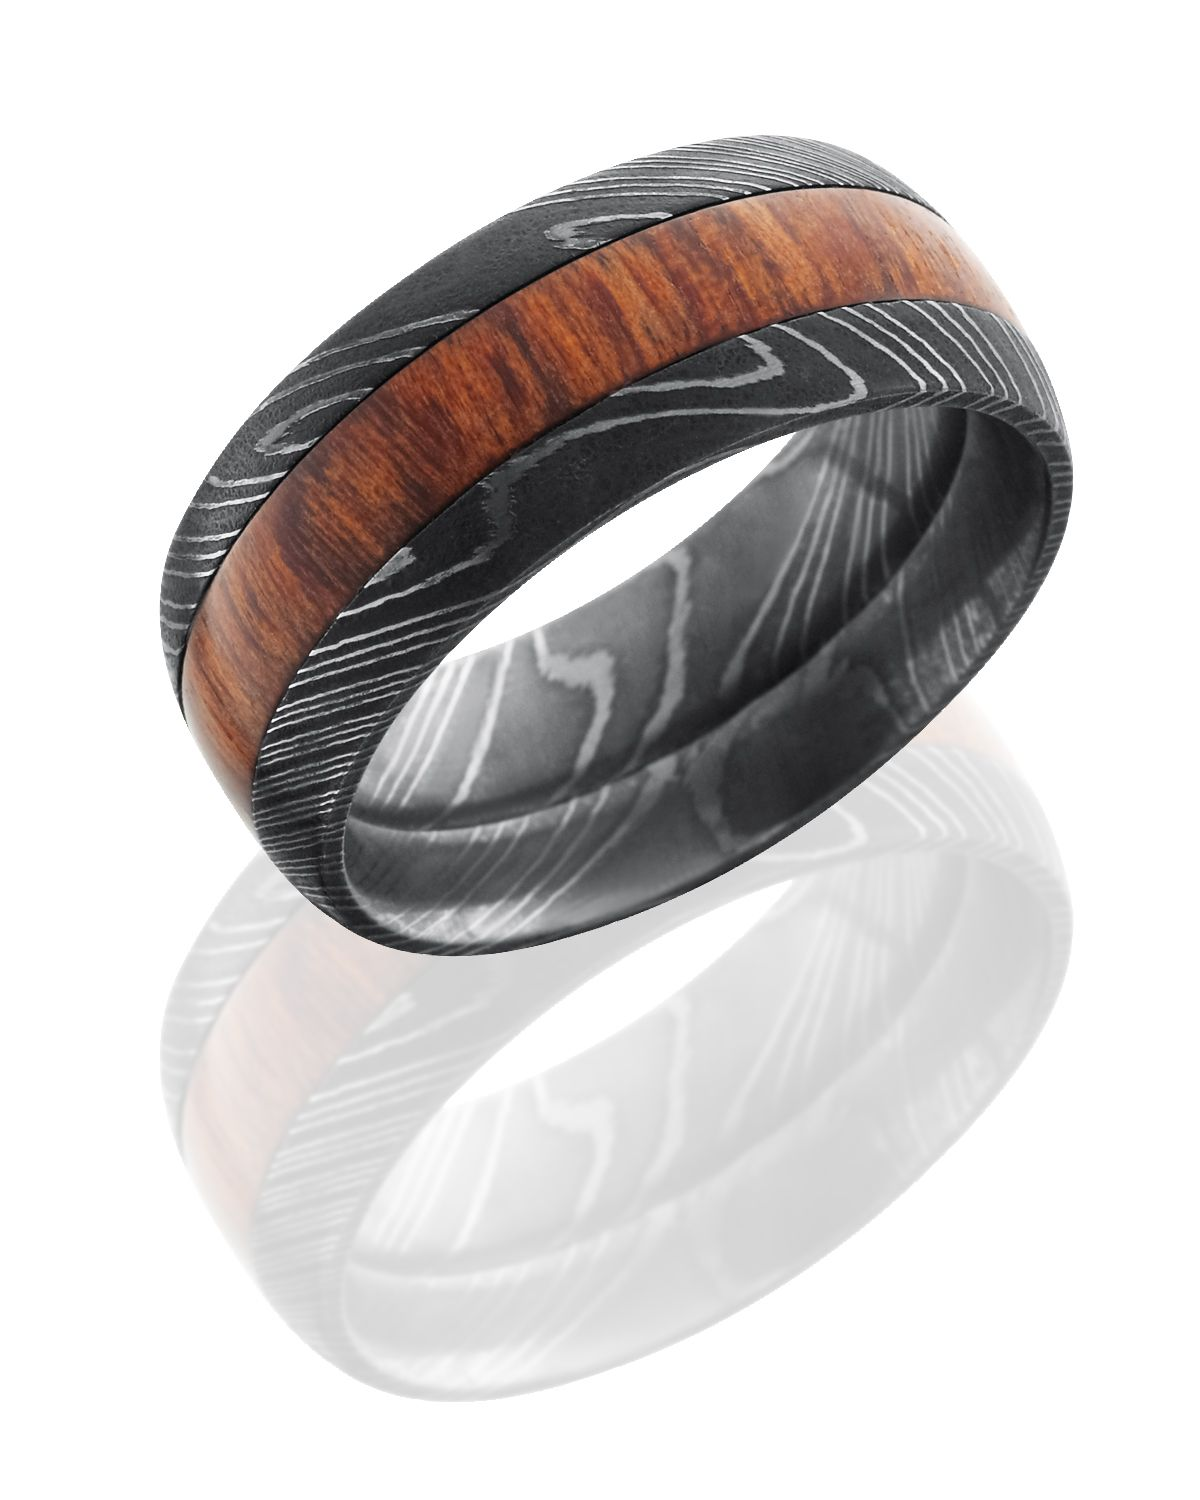 Crazy New Combinations In Mens Wedding Bands Wood Inlay Damascus Steel Available At Crews Jewelry